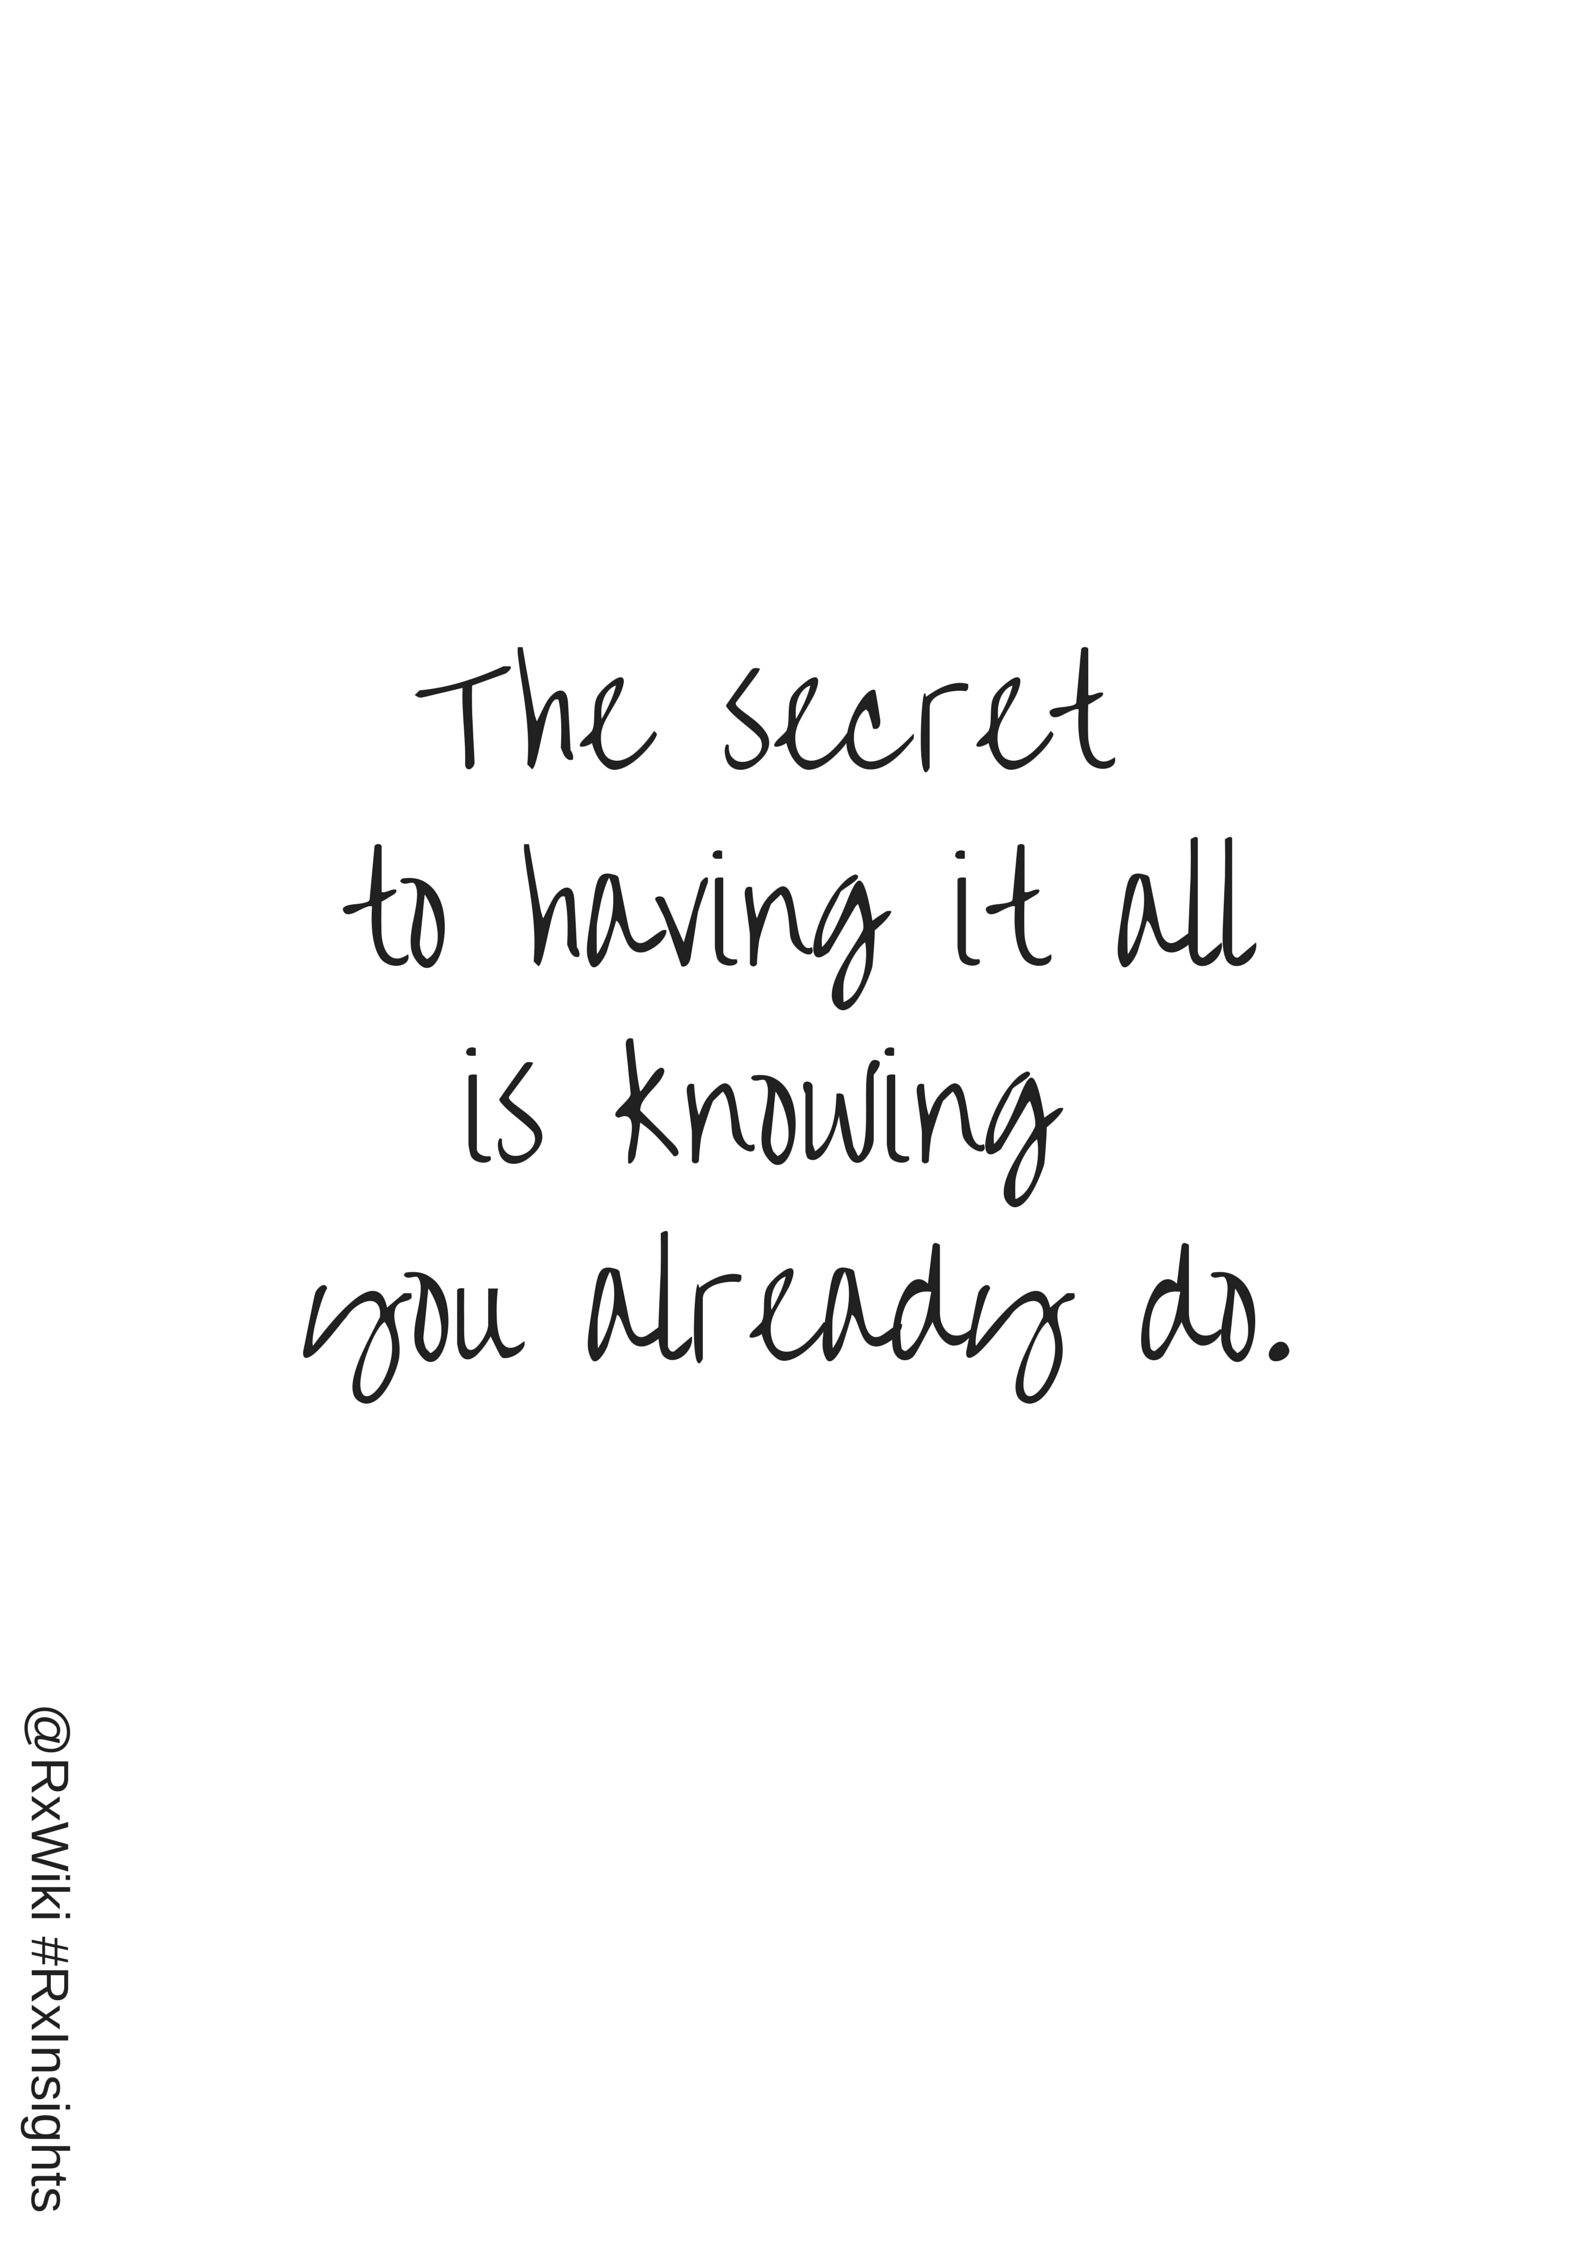 Love Family Quotes Prepossessing The Secret To Having It All Is Knowing You Already Do #quote #secret